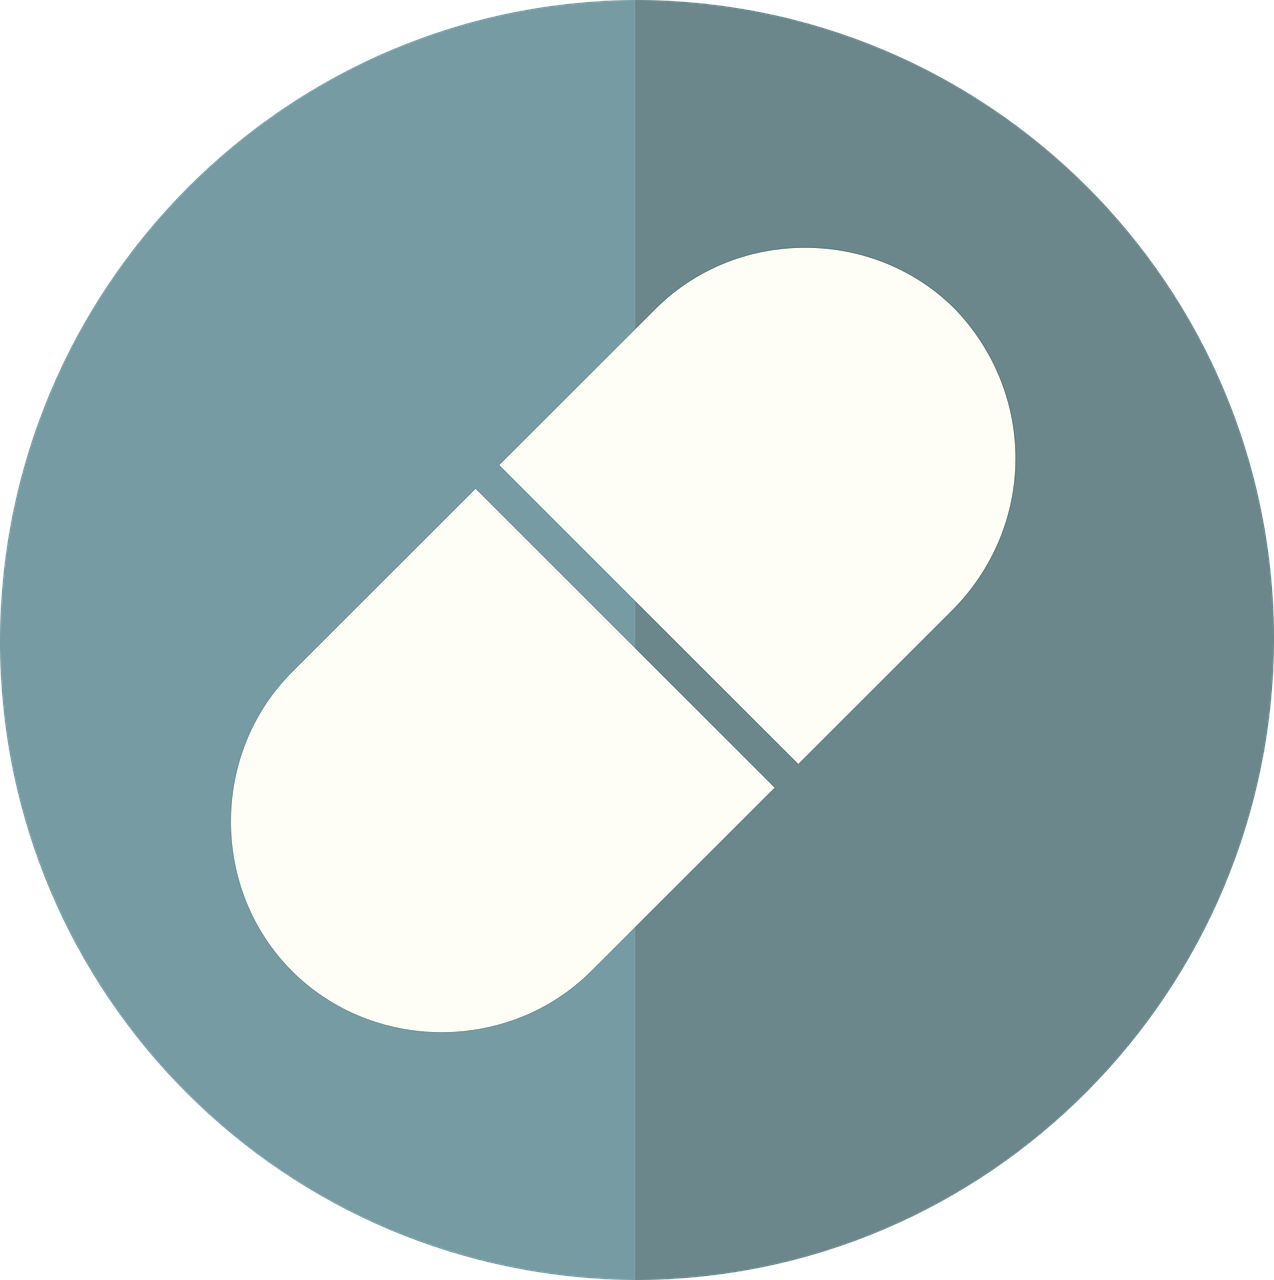 Pill for pain